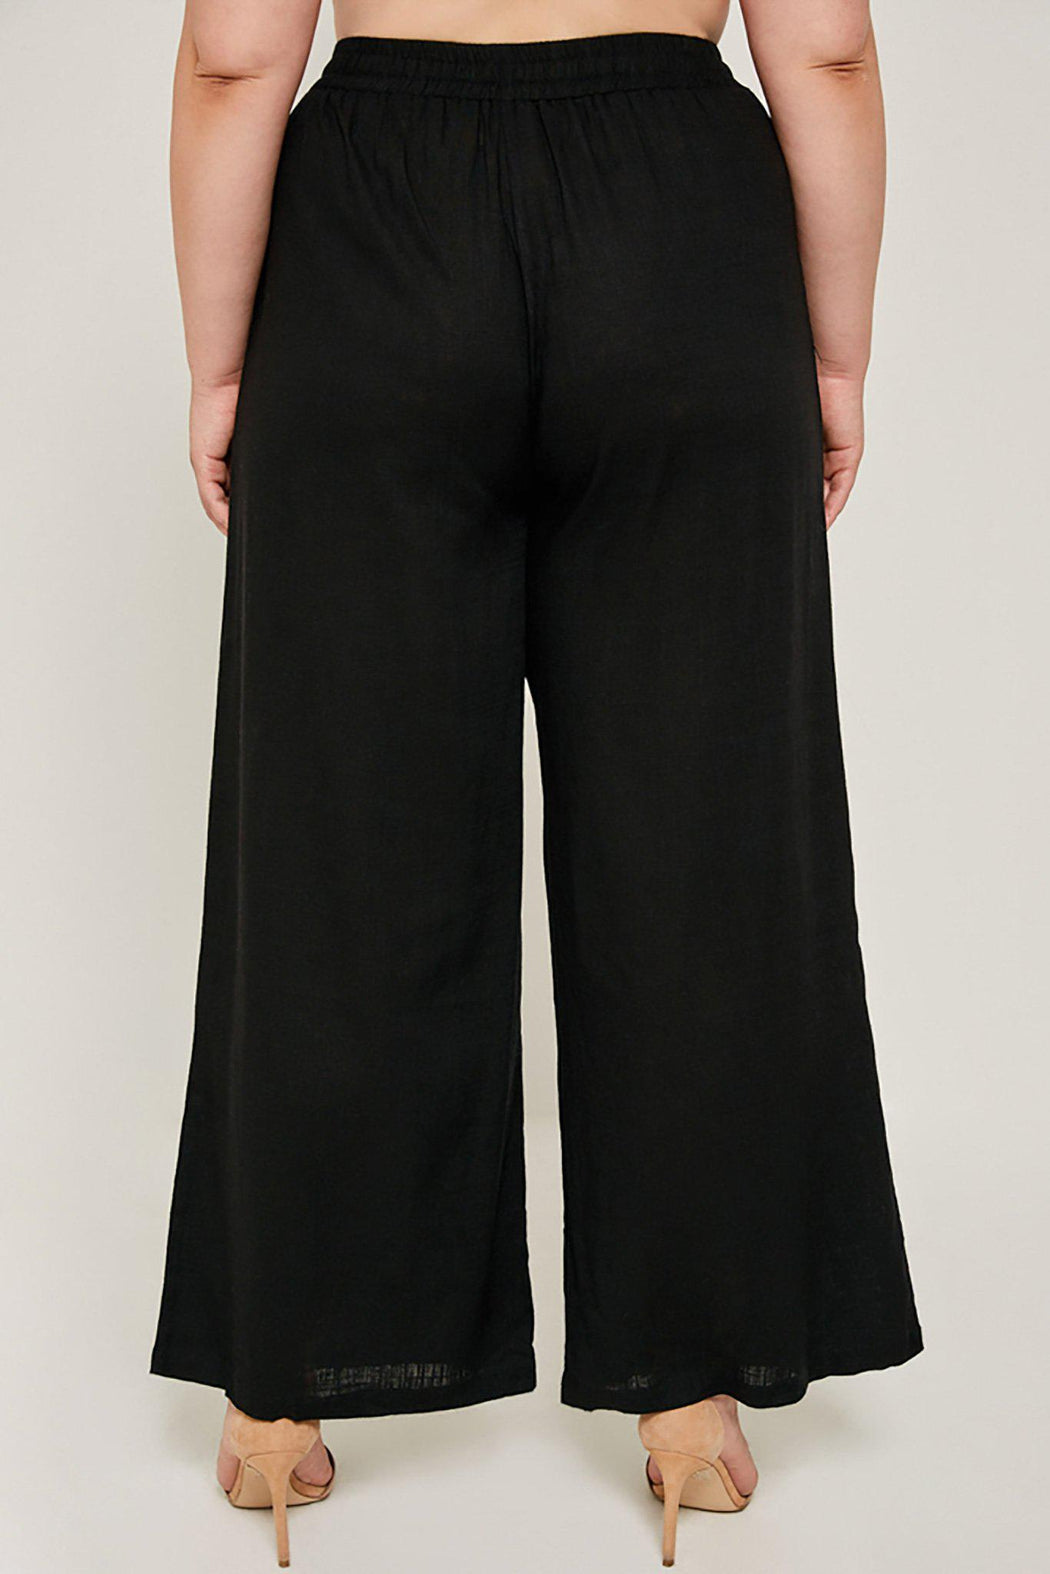 Plus-size wide leg black Madison pant close-up back view on model